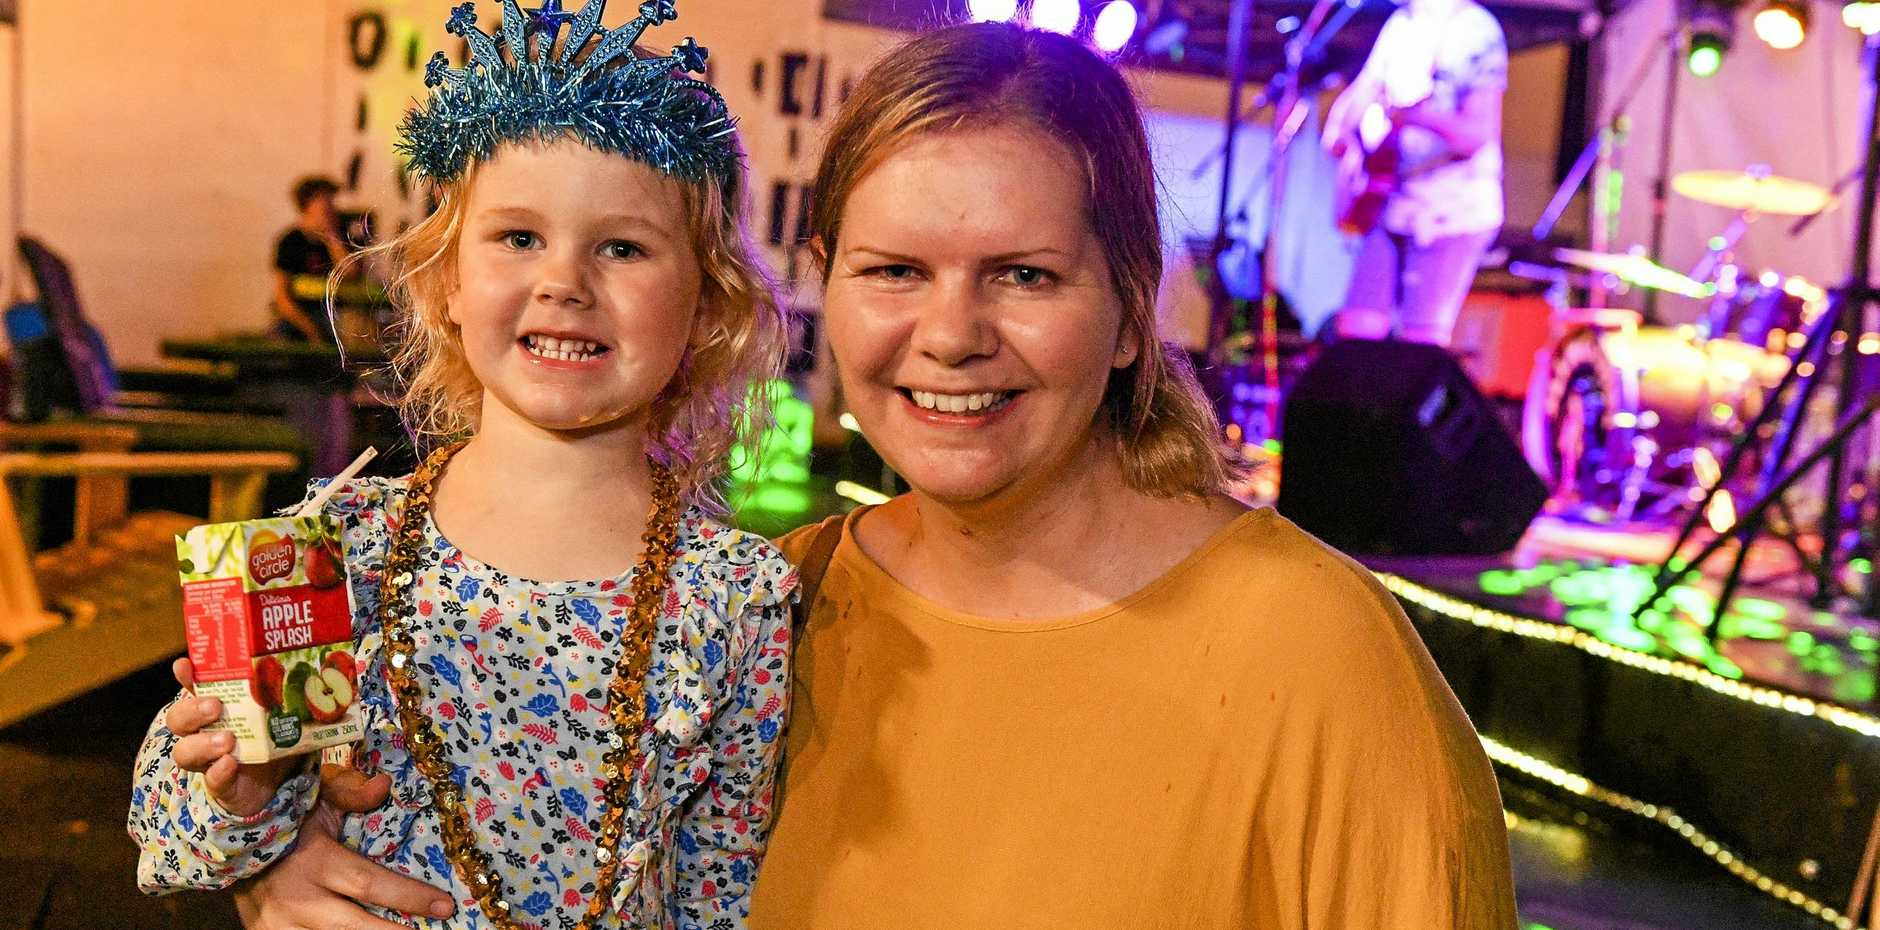 Tegan Pittard with Cadence, 4 were loving the live entertainment on their Saturday night.